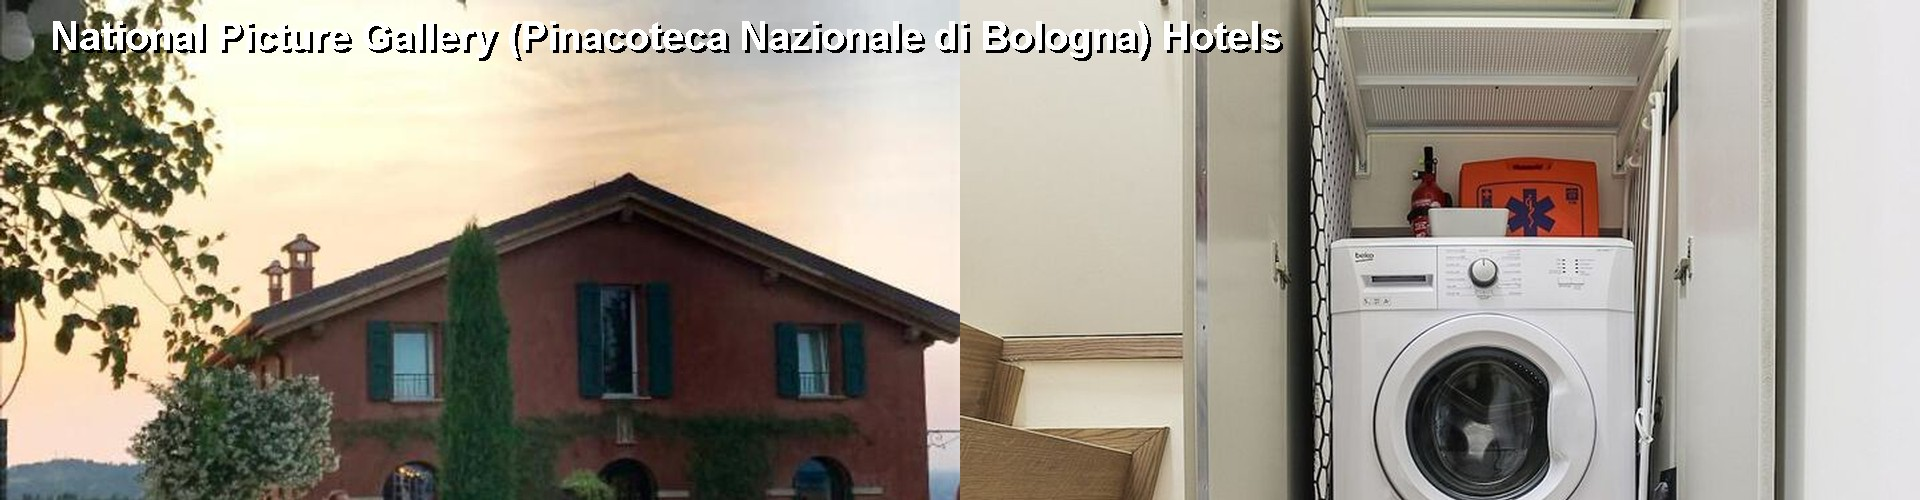 5 Best Hotels near National Picture Gallery (Pinacoteca Nazionale di Bologna)